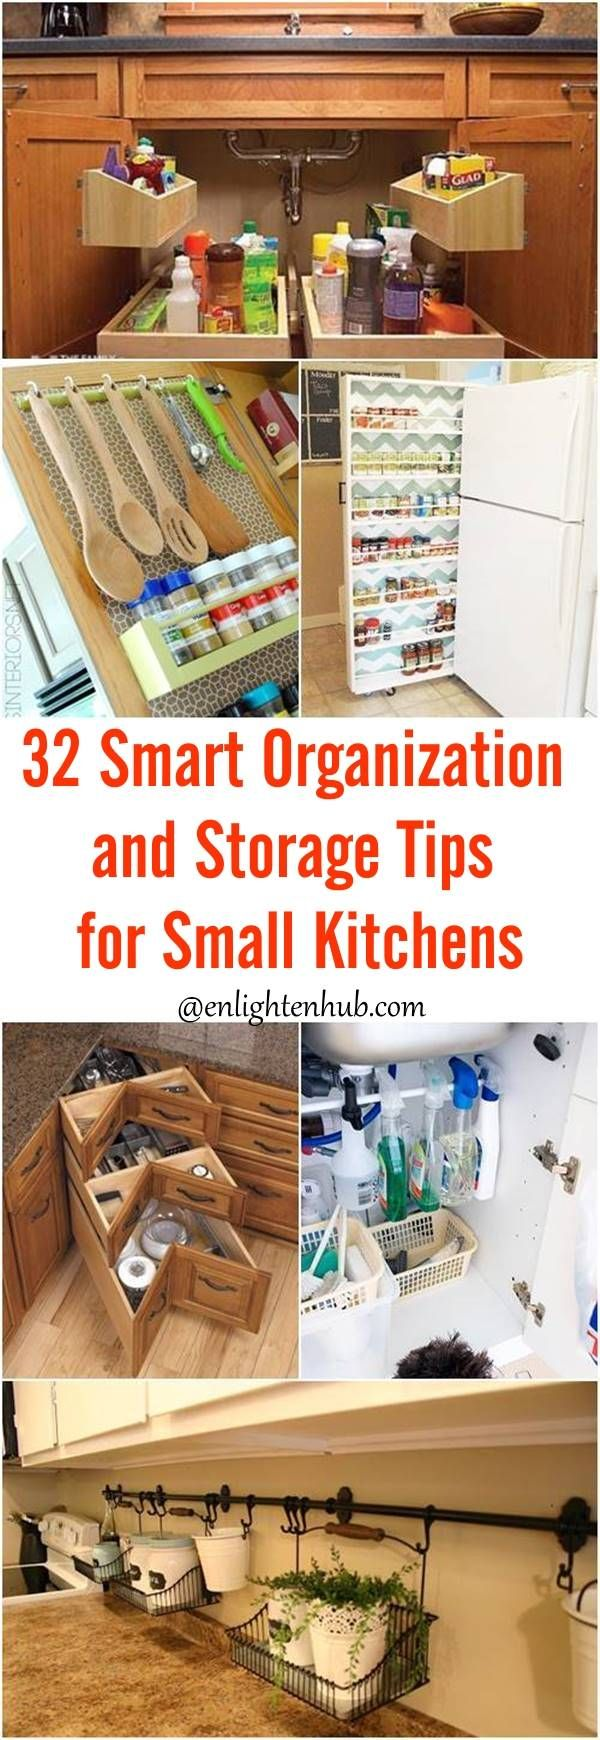 32 Smart Organization and Storage Tips for Small Kitchens